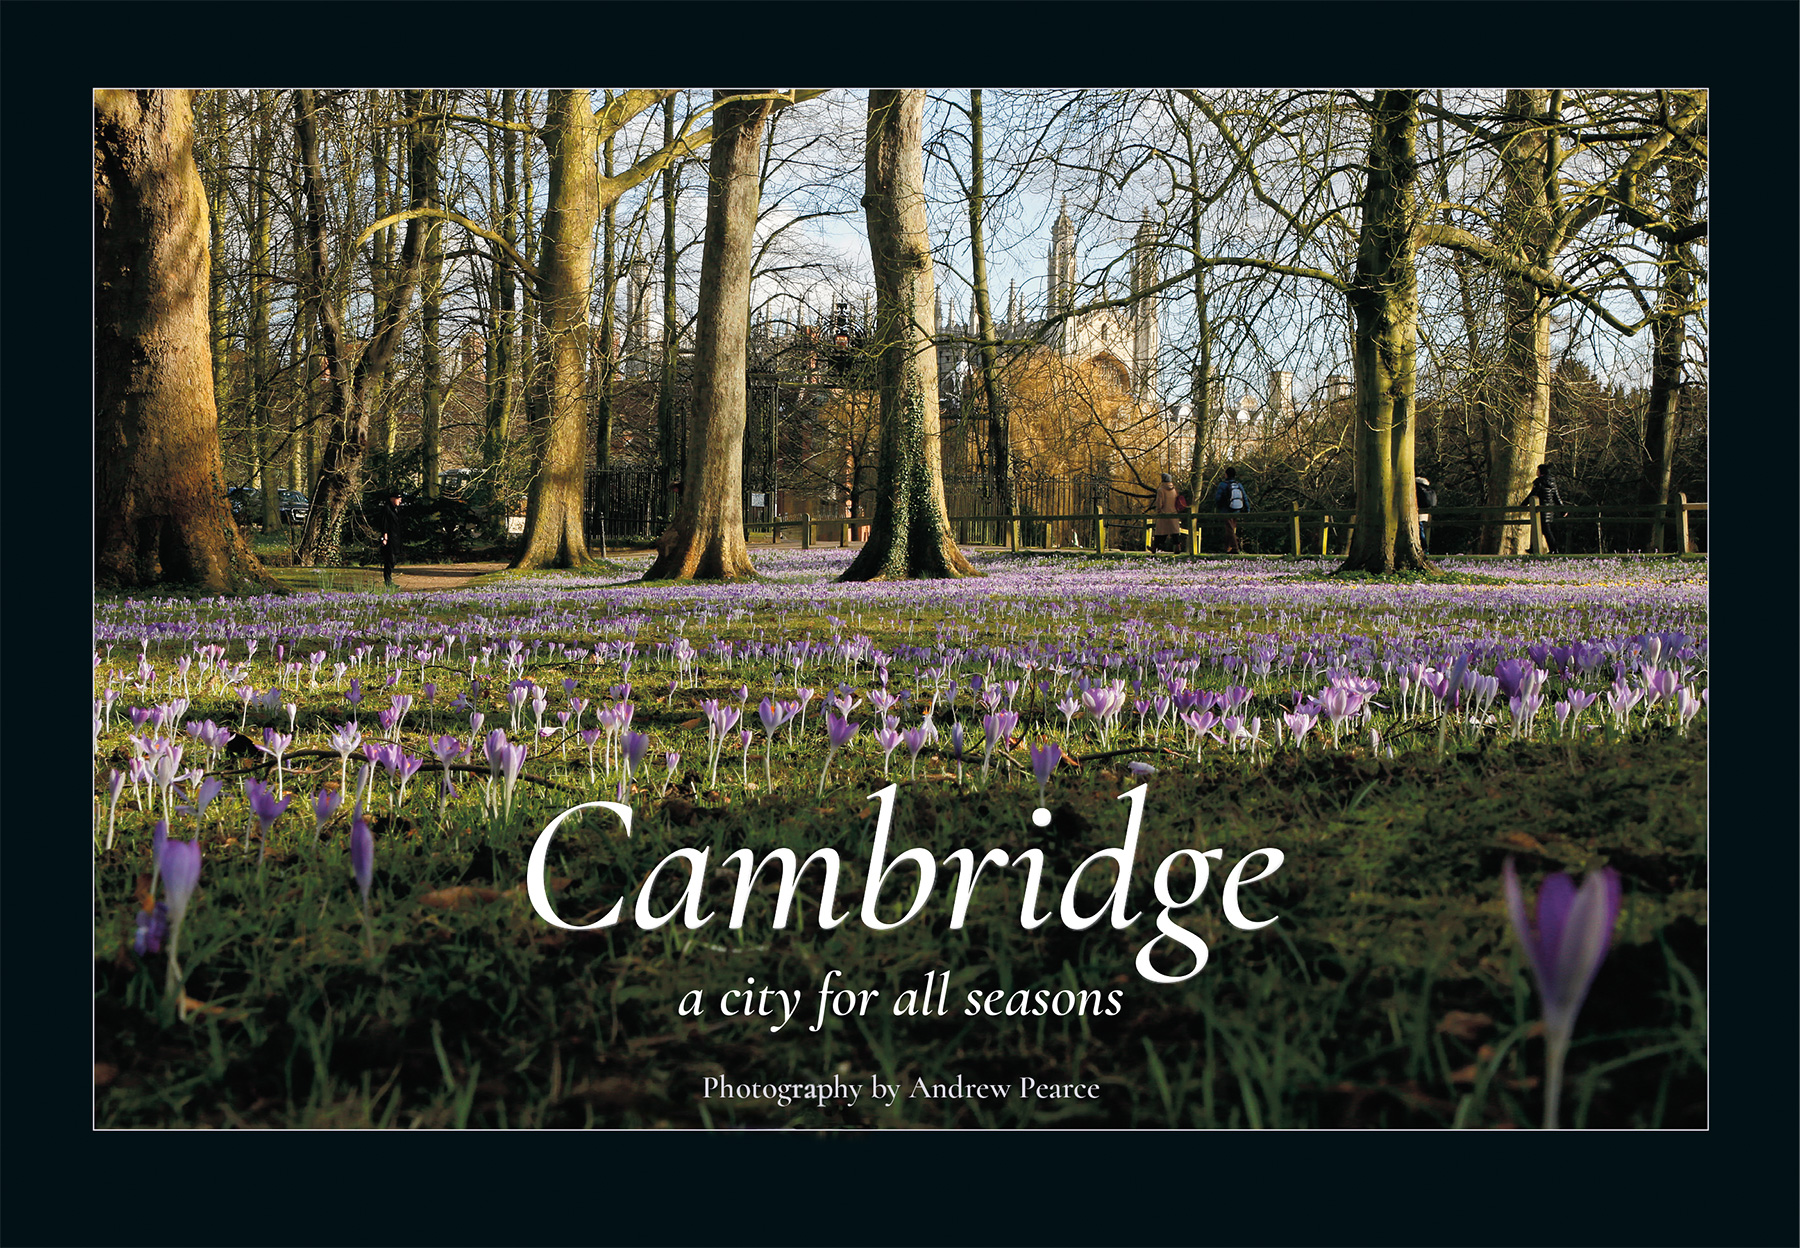 Our 2 new latest books on Cambridge- new publication coming soon!